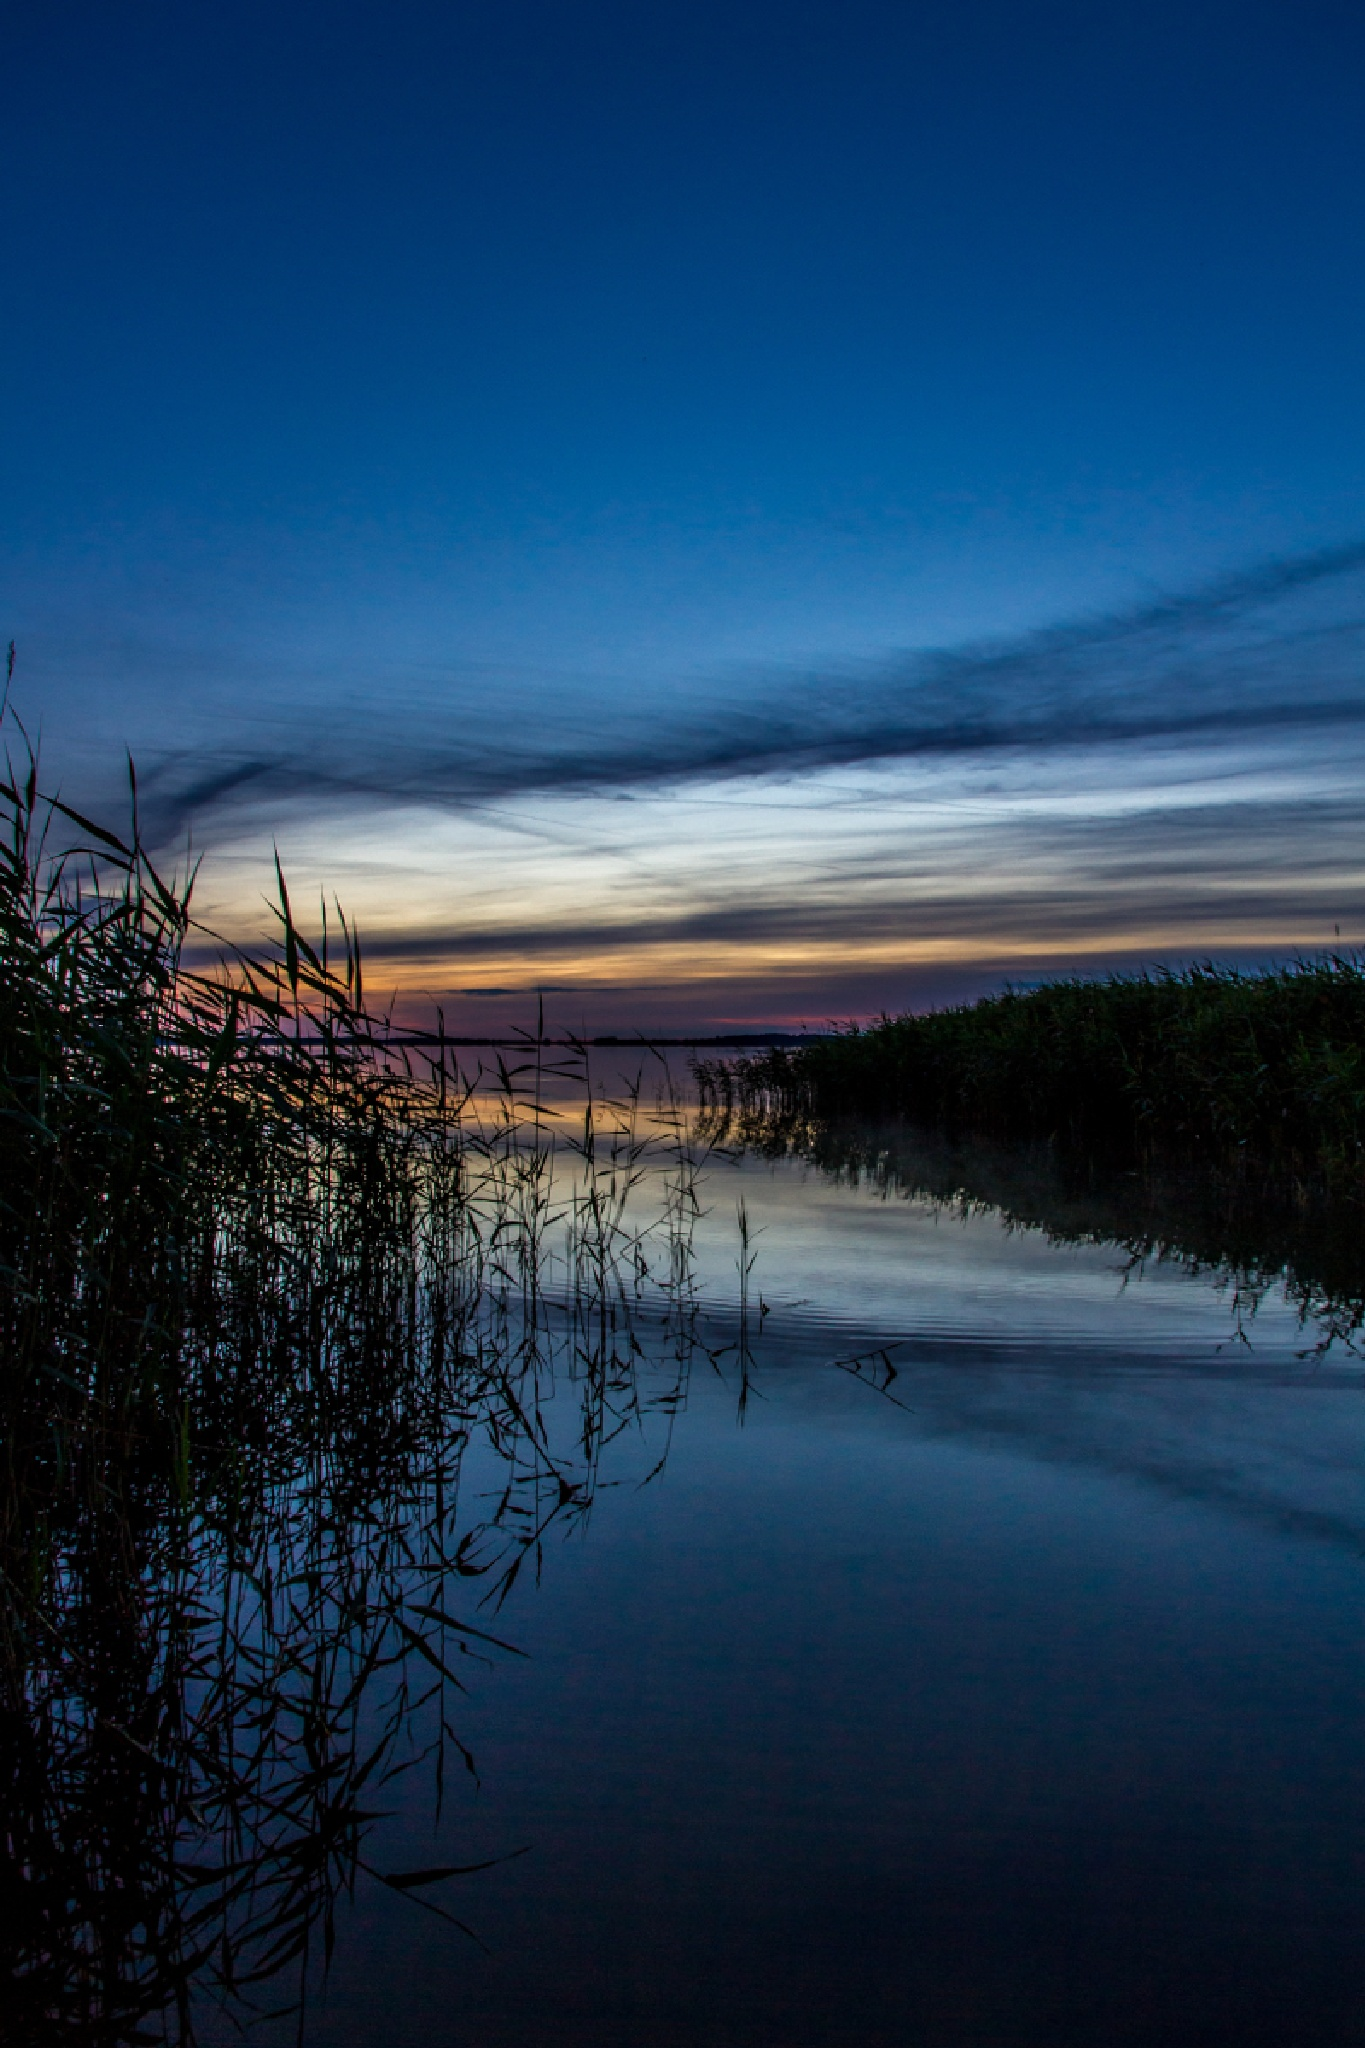 Evening by the sea by FSFoto